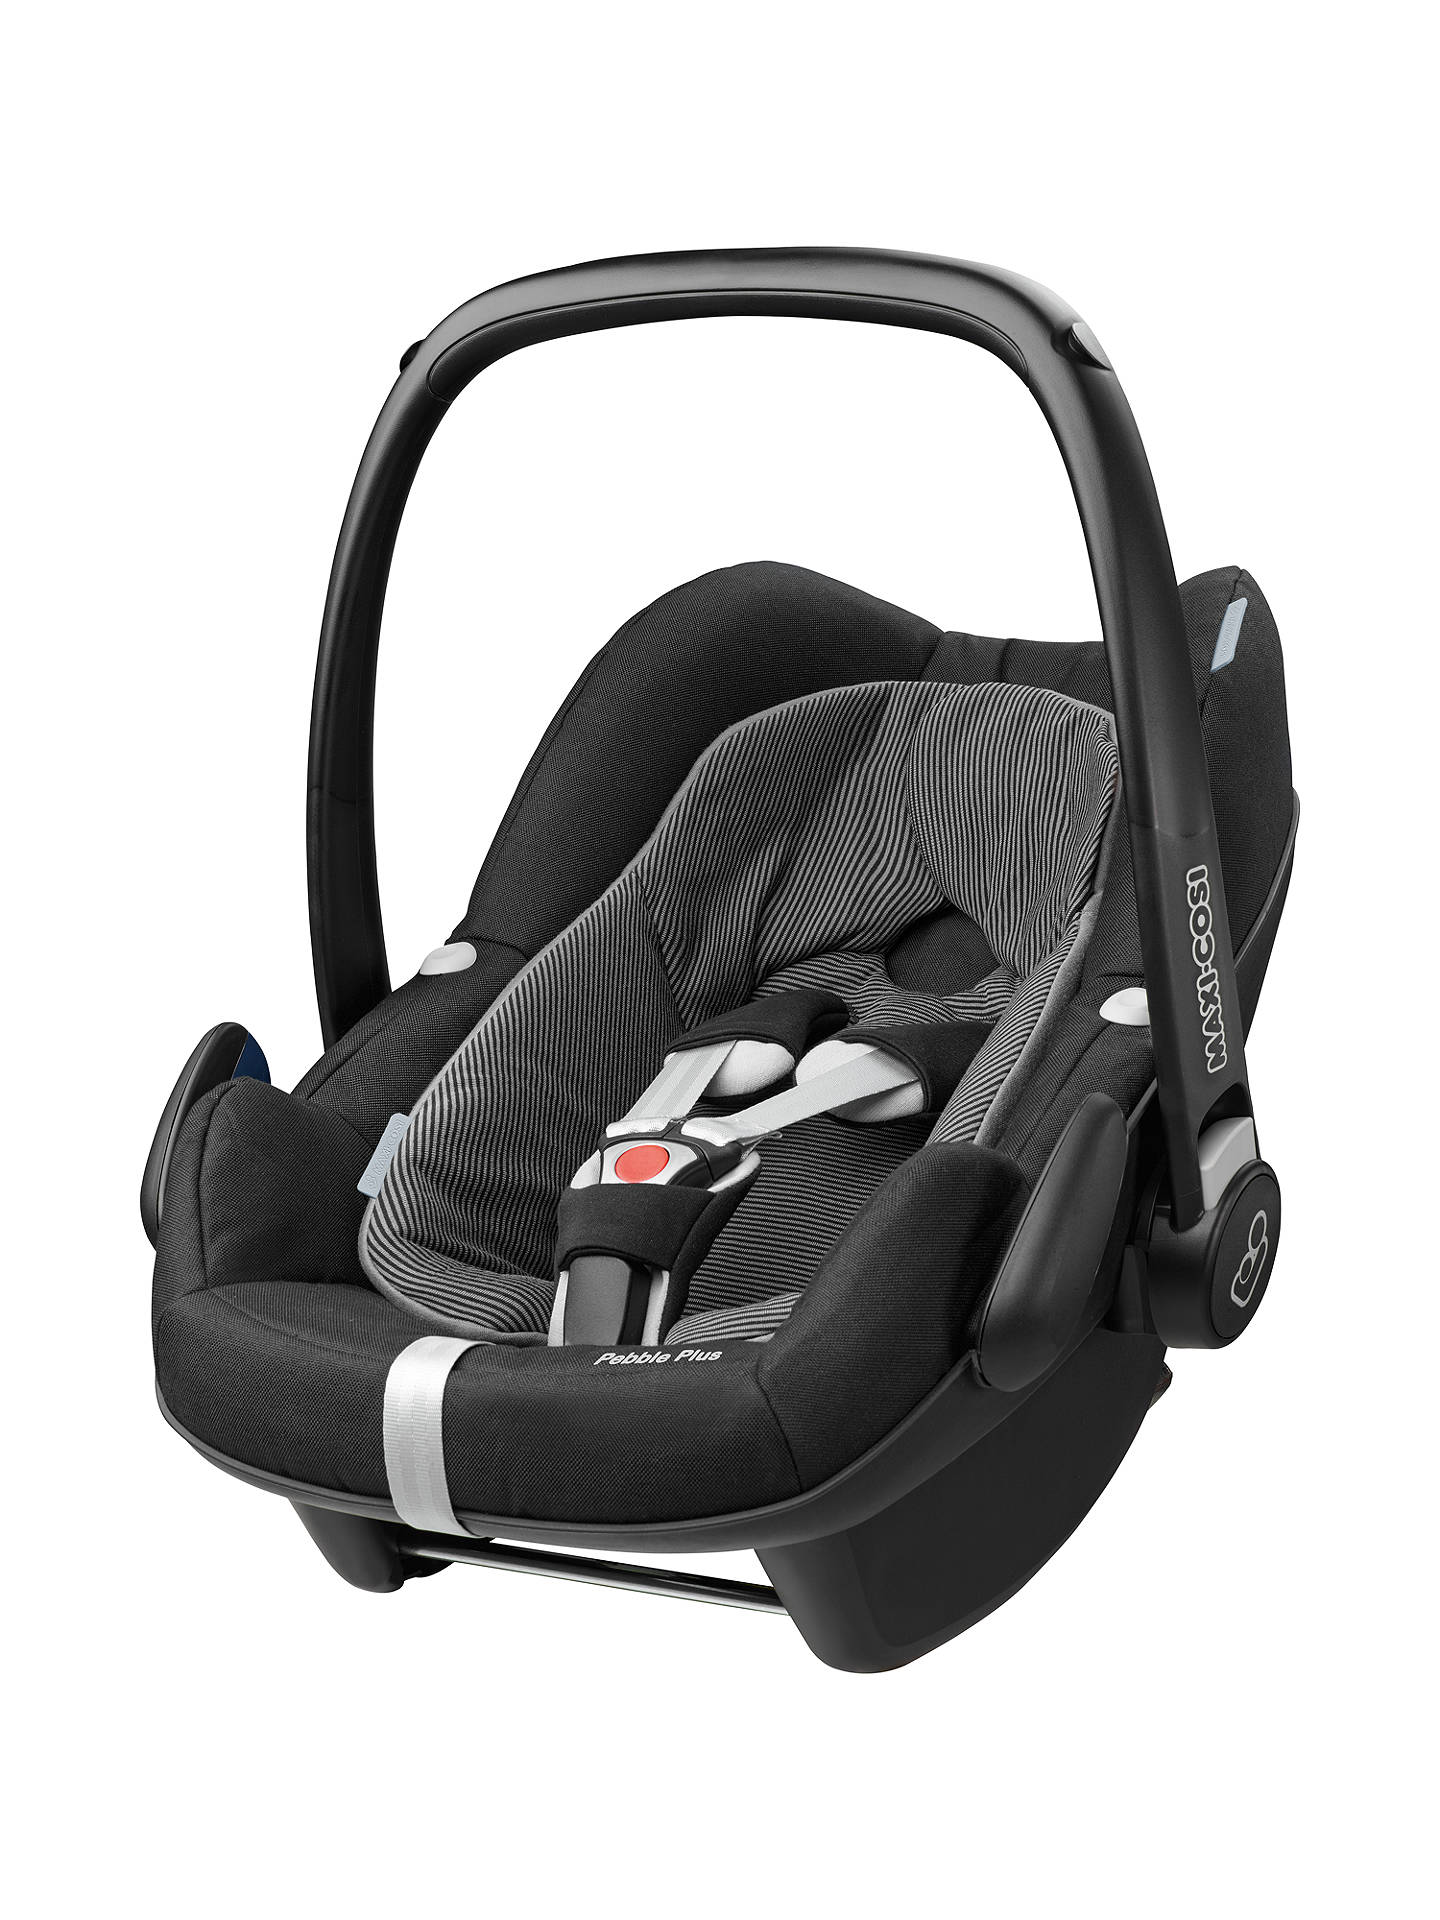 maxi cosi pebble plus i size group 0 baby car seat black raven at john lewis partners. Black Bedroom Furniture Sets. Home Design Ideas